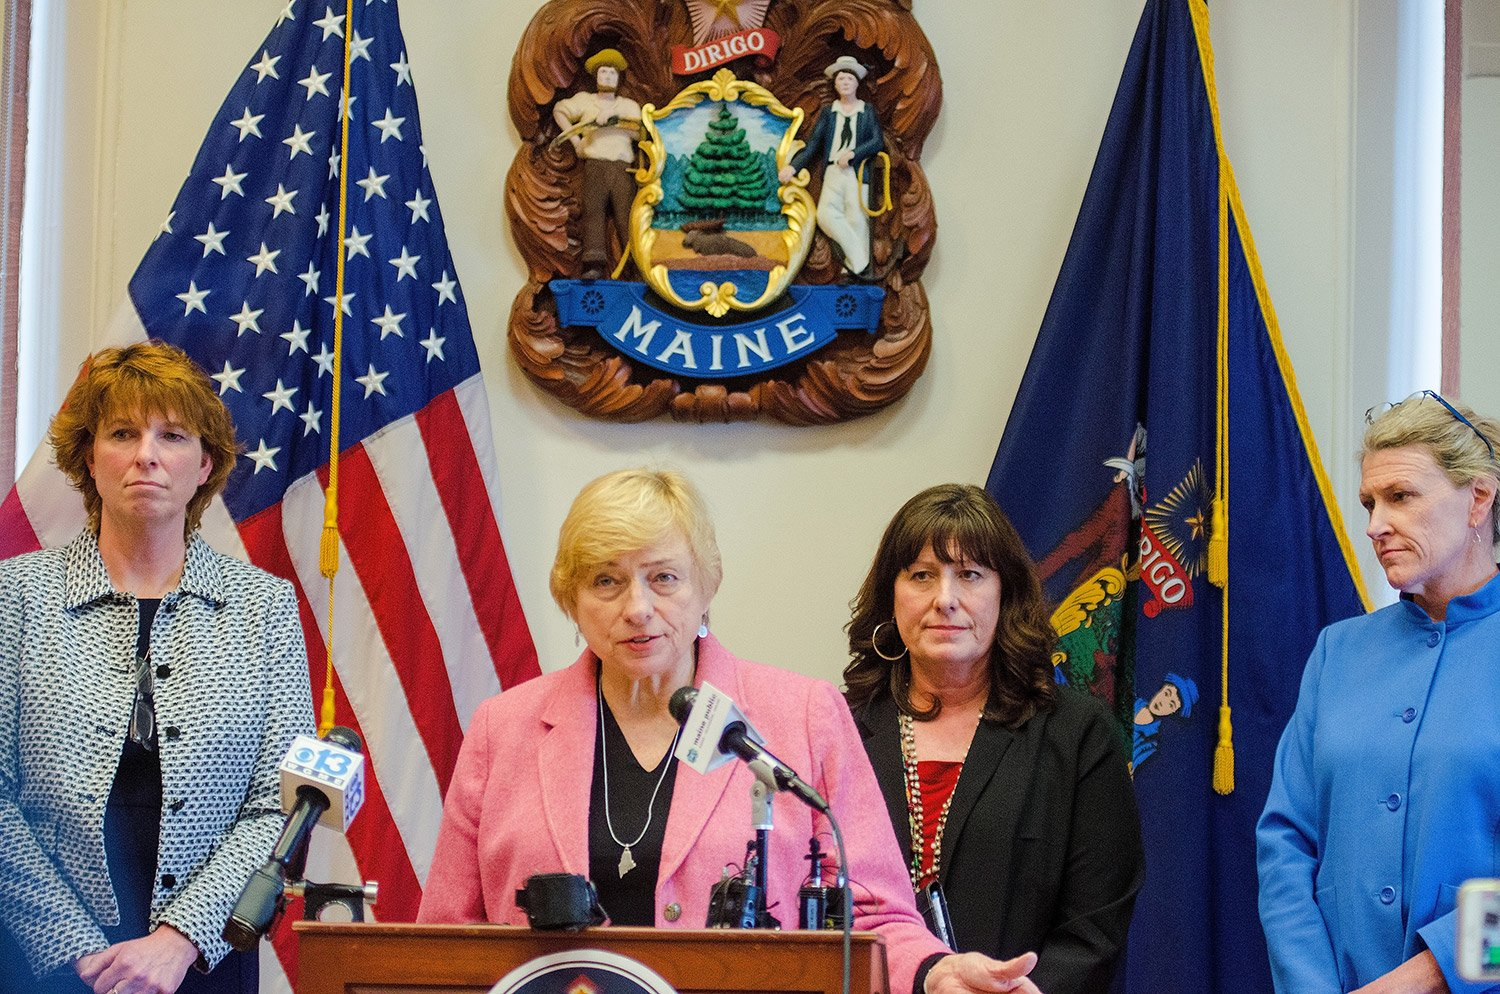 From left, Administrative and Financial Services Commissioner Kirsten Figueroa, Gov. Janet Mills, Education Commissioner Pender Makin and Health and Human Services Commissioner Jeanne Lambrew announce the proposed two-year state budget Friday at the State House.